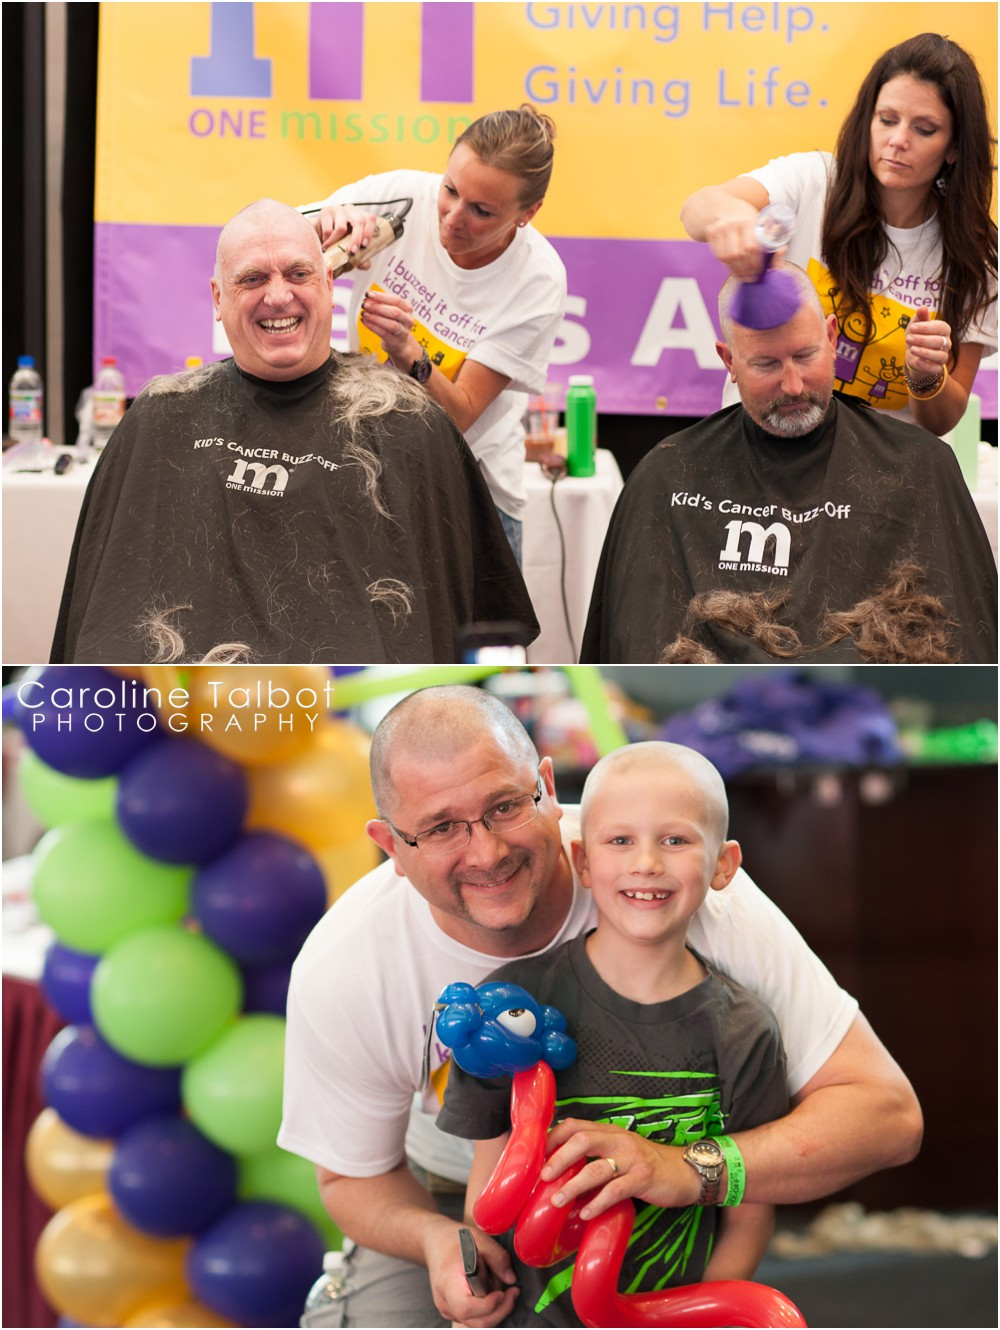 One_Mission_Kids_Cancer_Buzz_Off_11